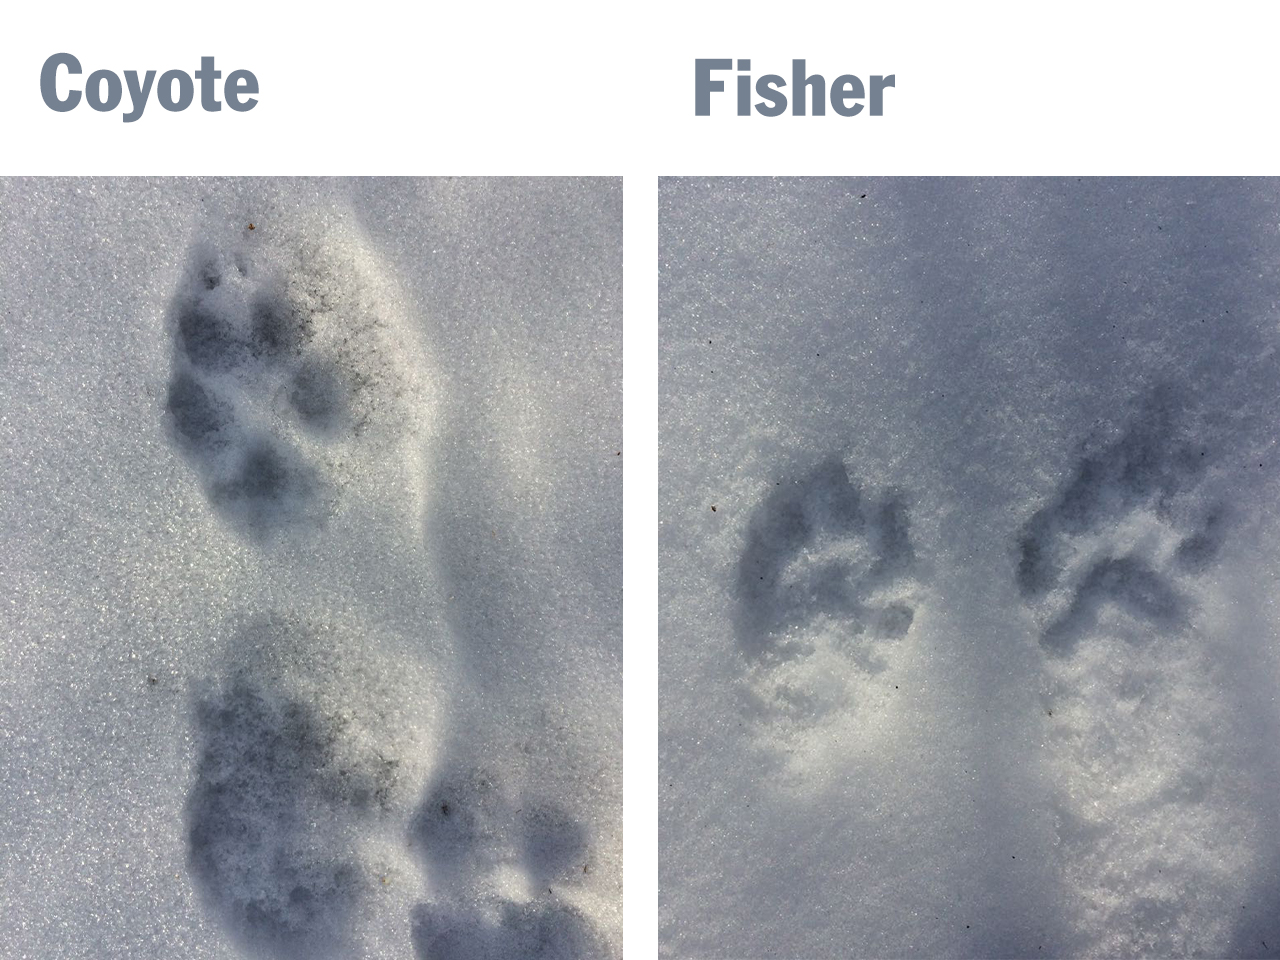 Coyote and fisher tracks